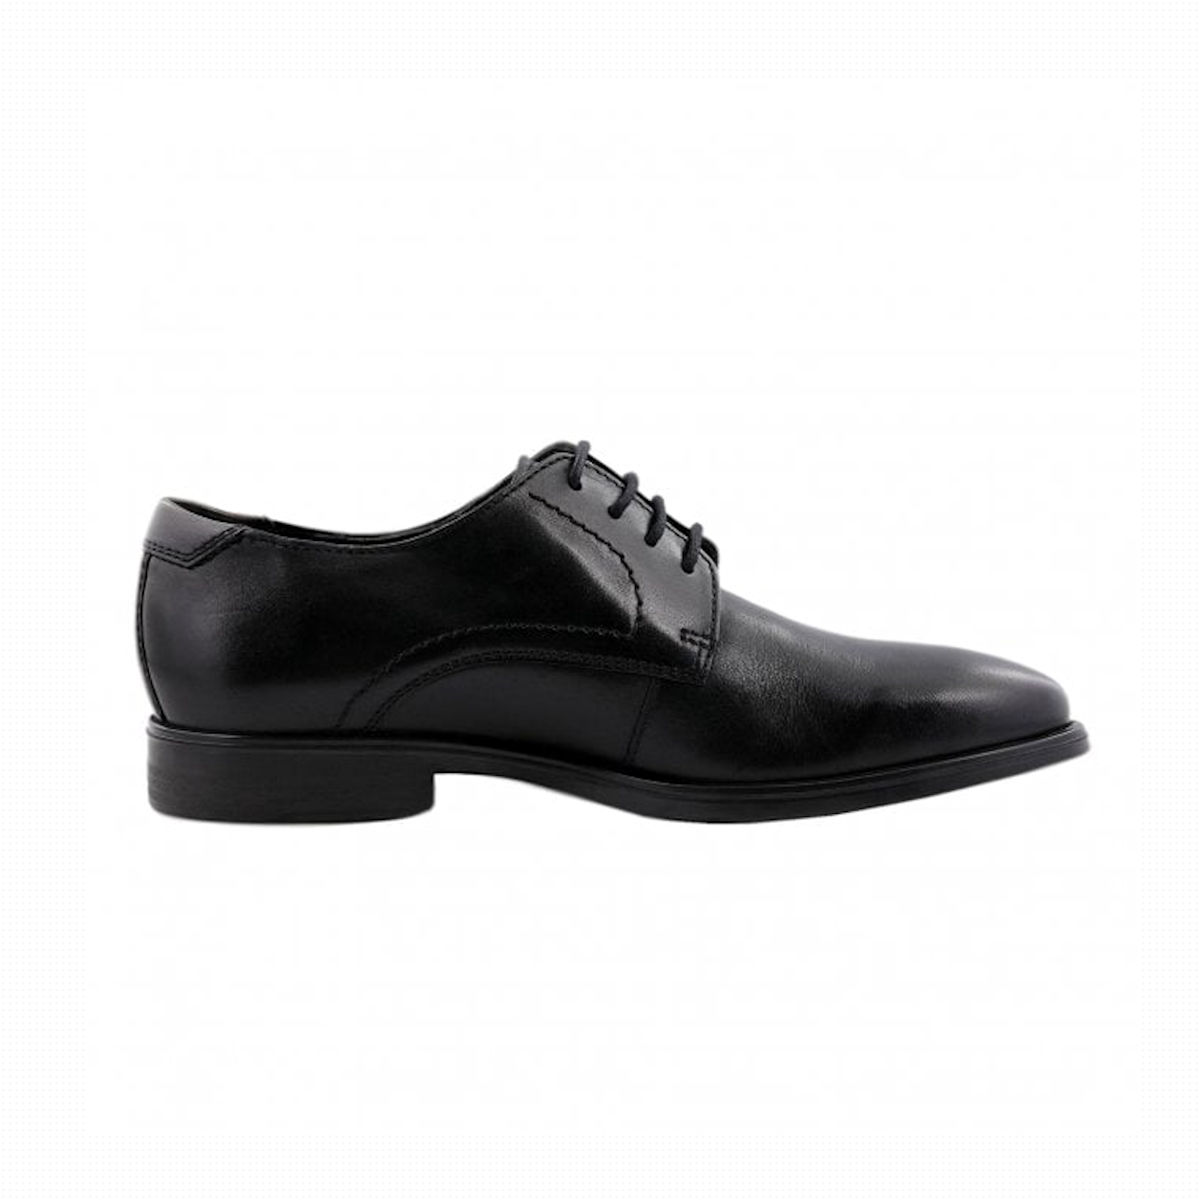 ECCO Melborne Mens Black Formal Shoe